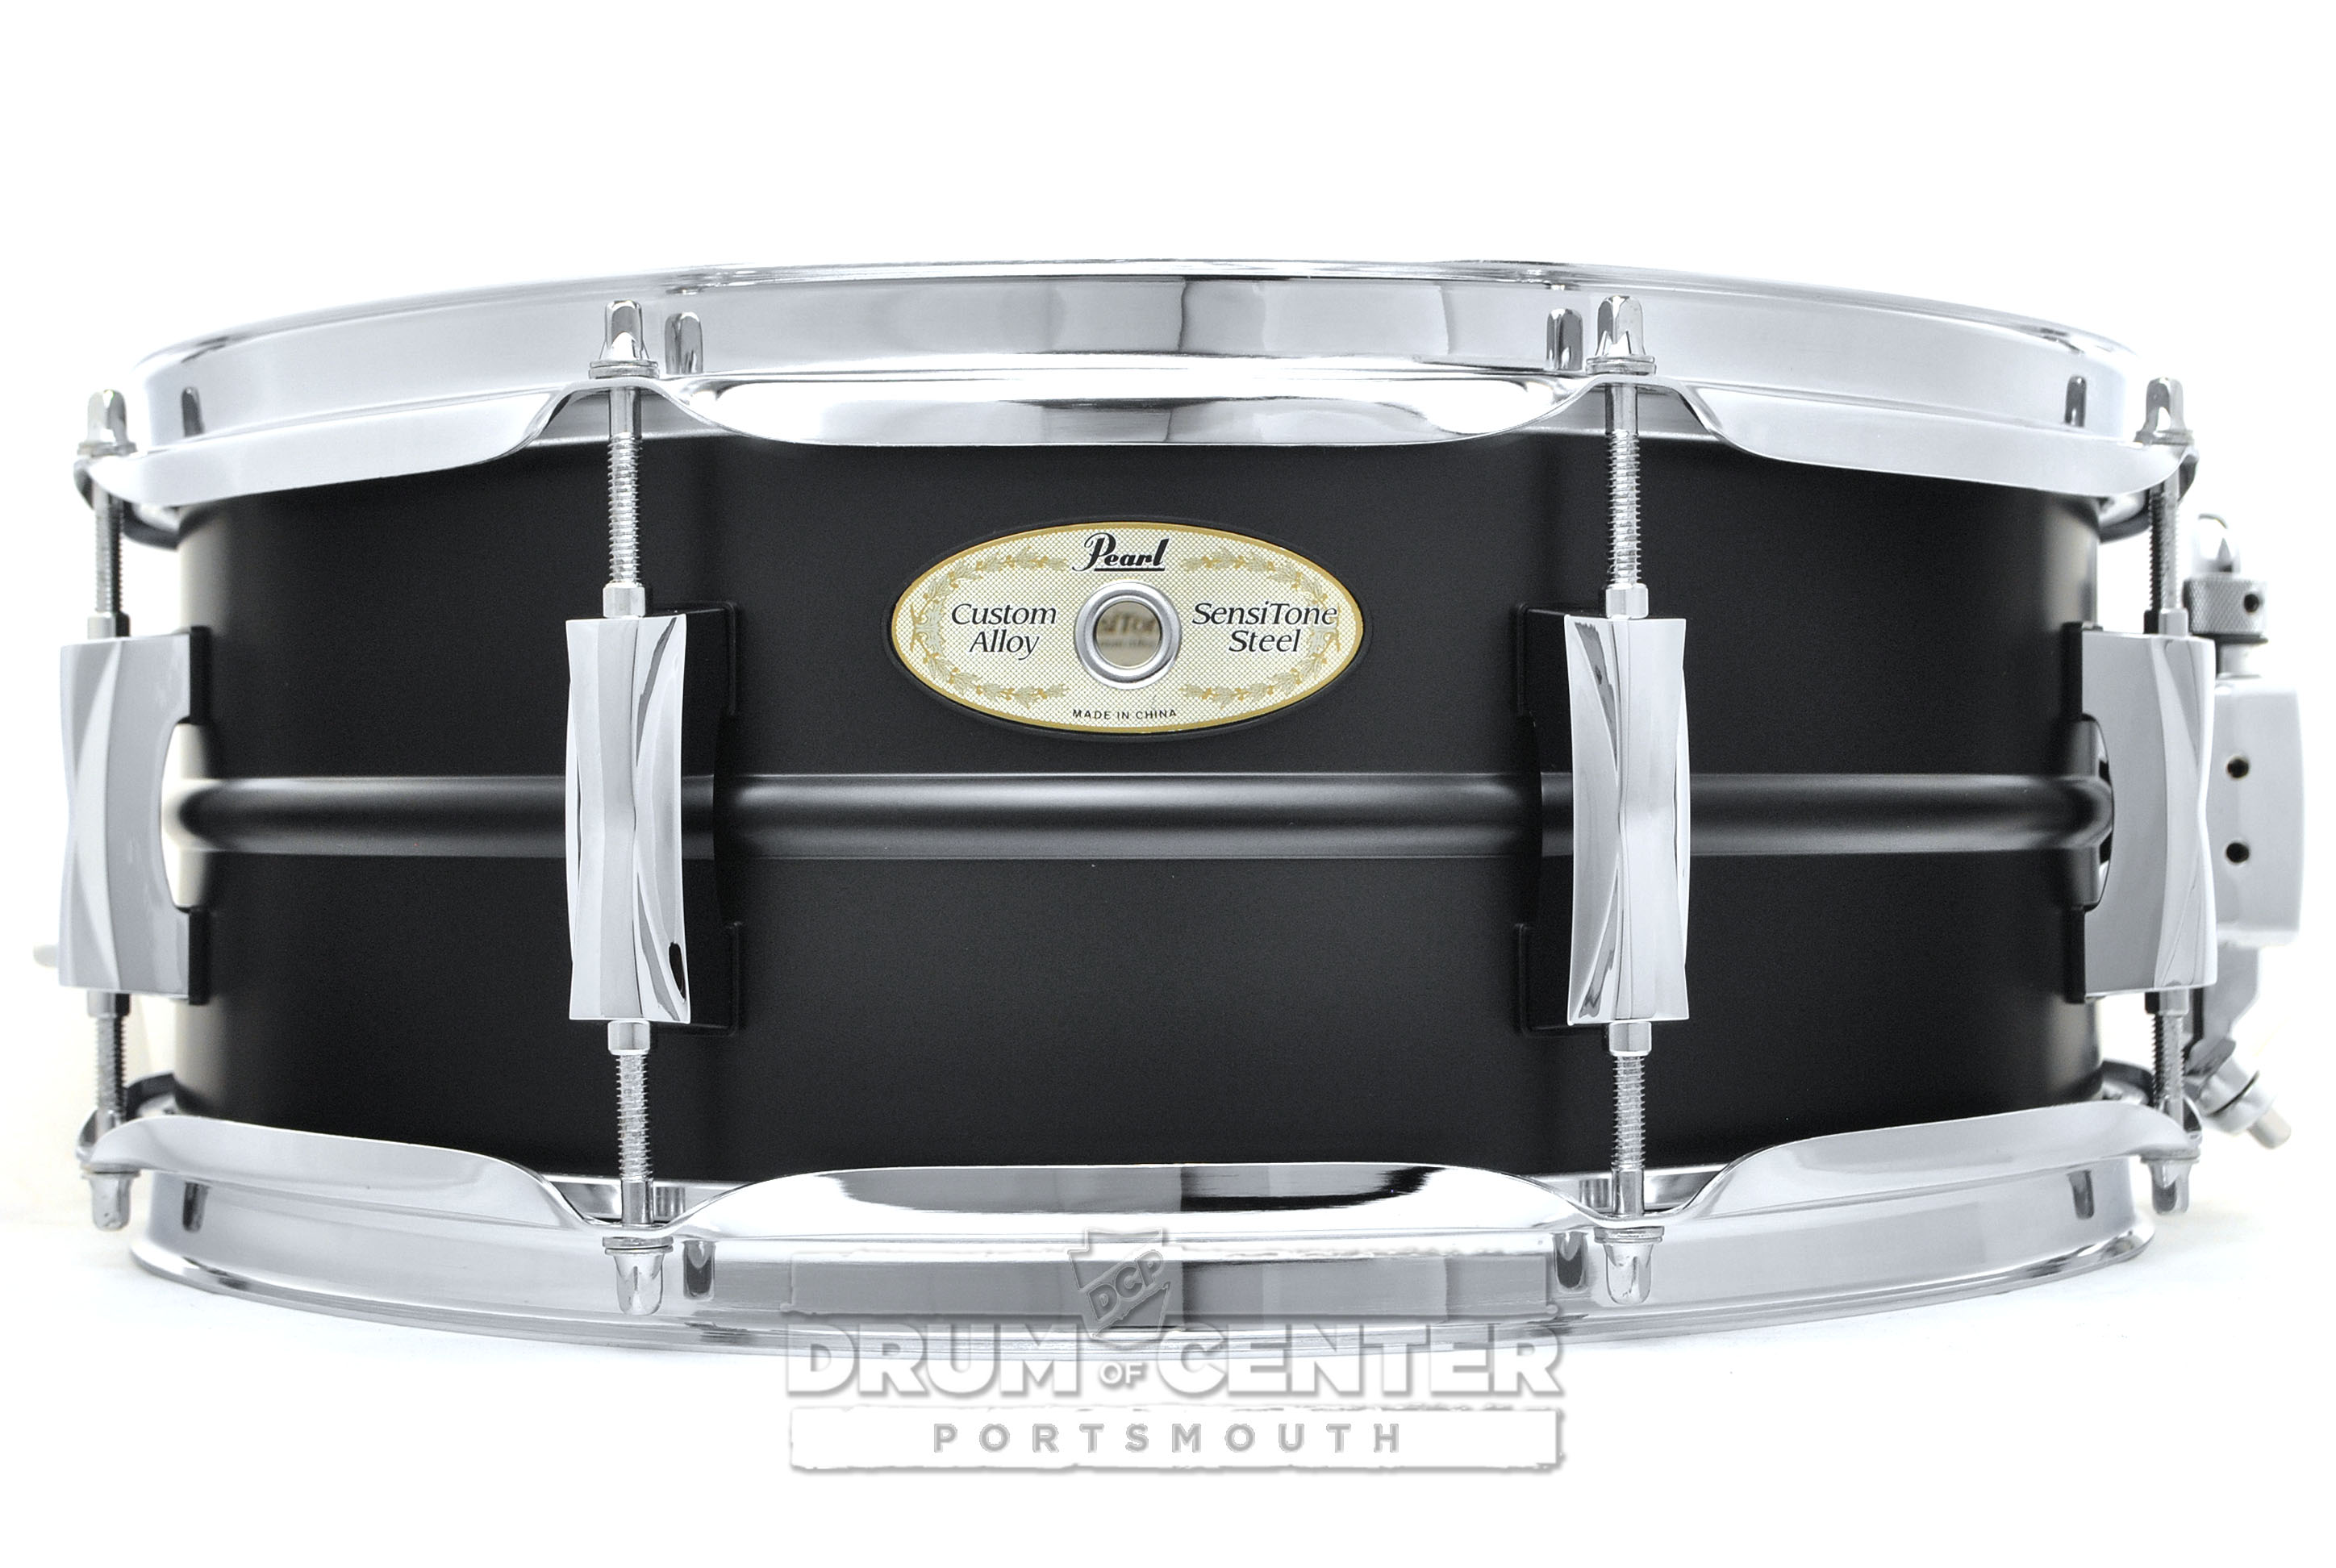 pearl sensitone beaded steel snare drum 14x5 5 ss1455sb c portsmouth new hampshire. Black Bedroom Furniture Sets. Home Design Ideas